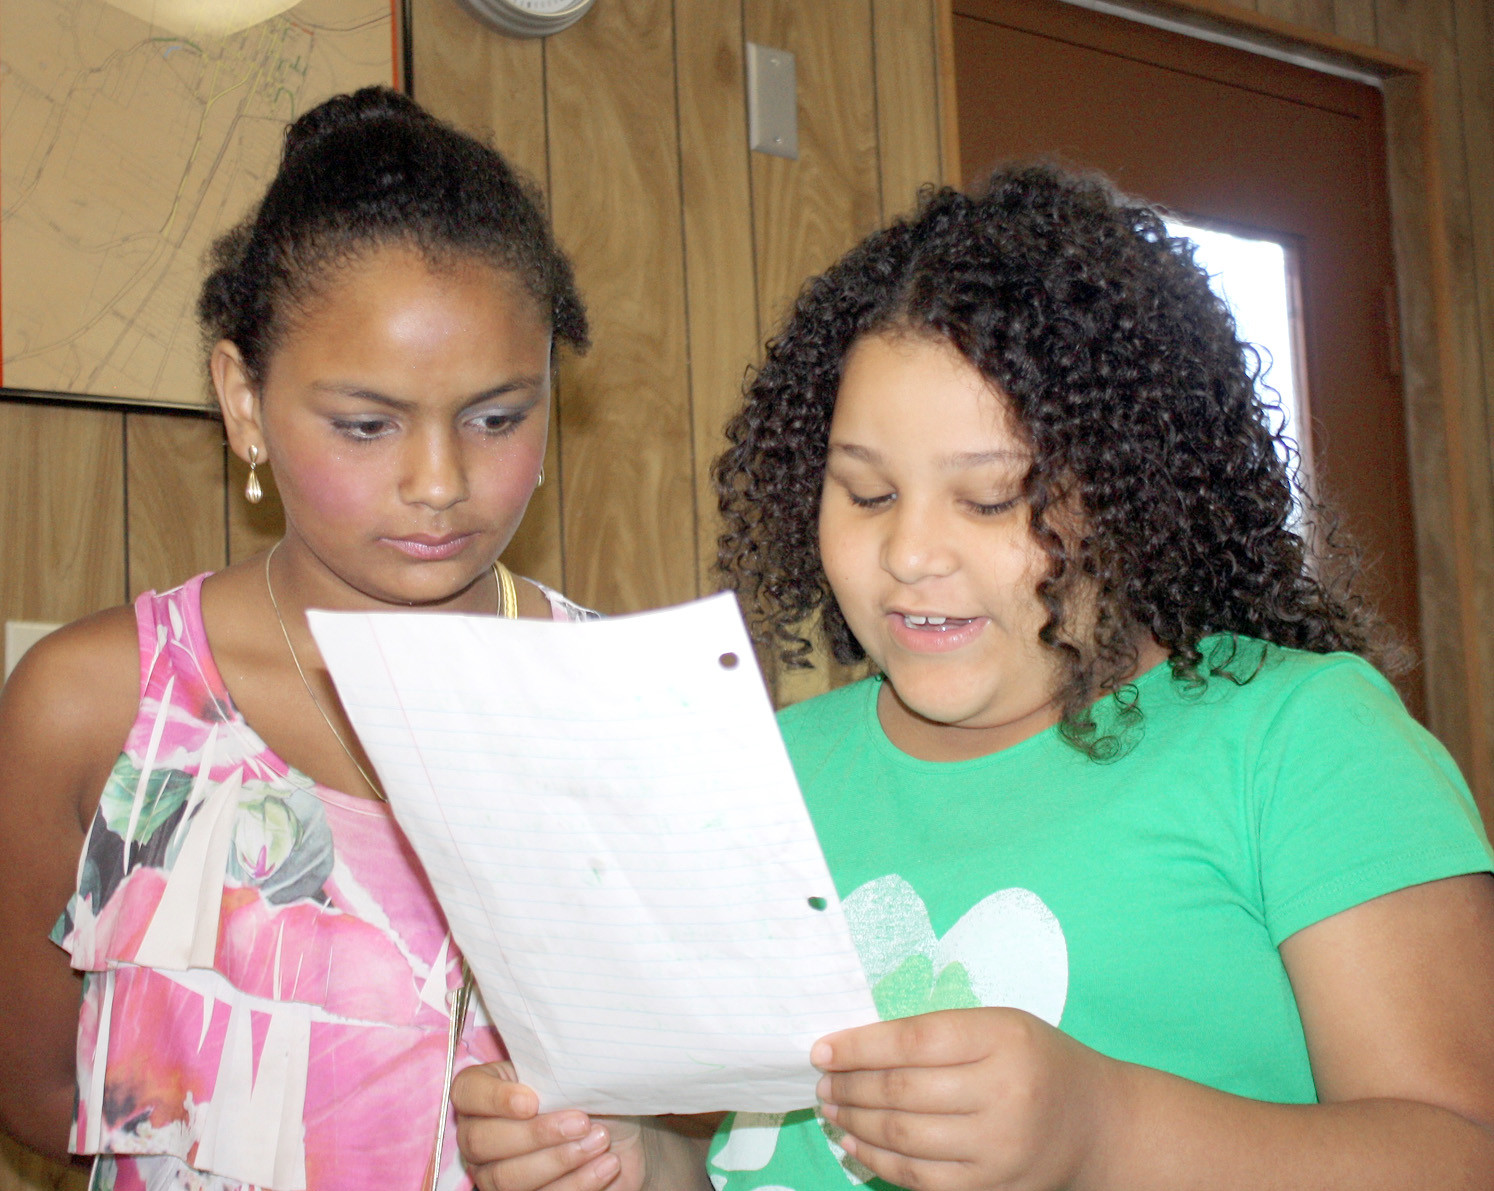 TWO CHARLESTON 9-year-old girls have some definite ideas for improvements at Charleston's Hoyt Berry City Park. Above, Tonya Bradley, left, and Alaysia Lattimore read a letter listing their improvement suggestions; and they've already raised $153.53 for the tentative project at a gospel singing fundraiser.